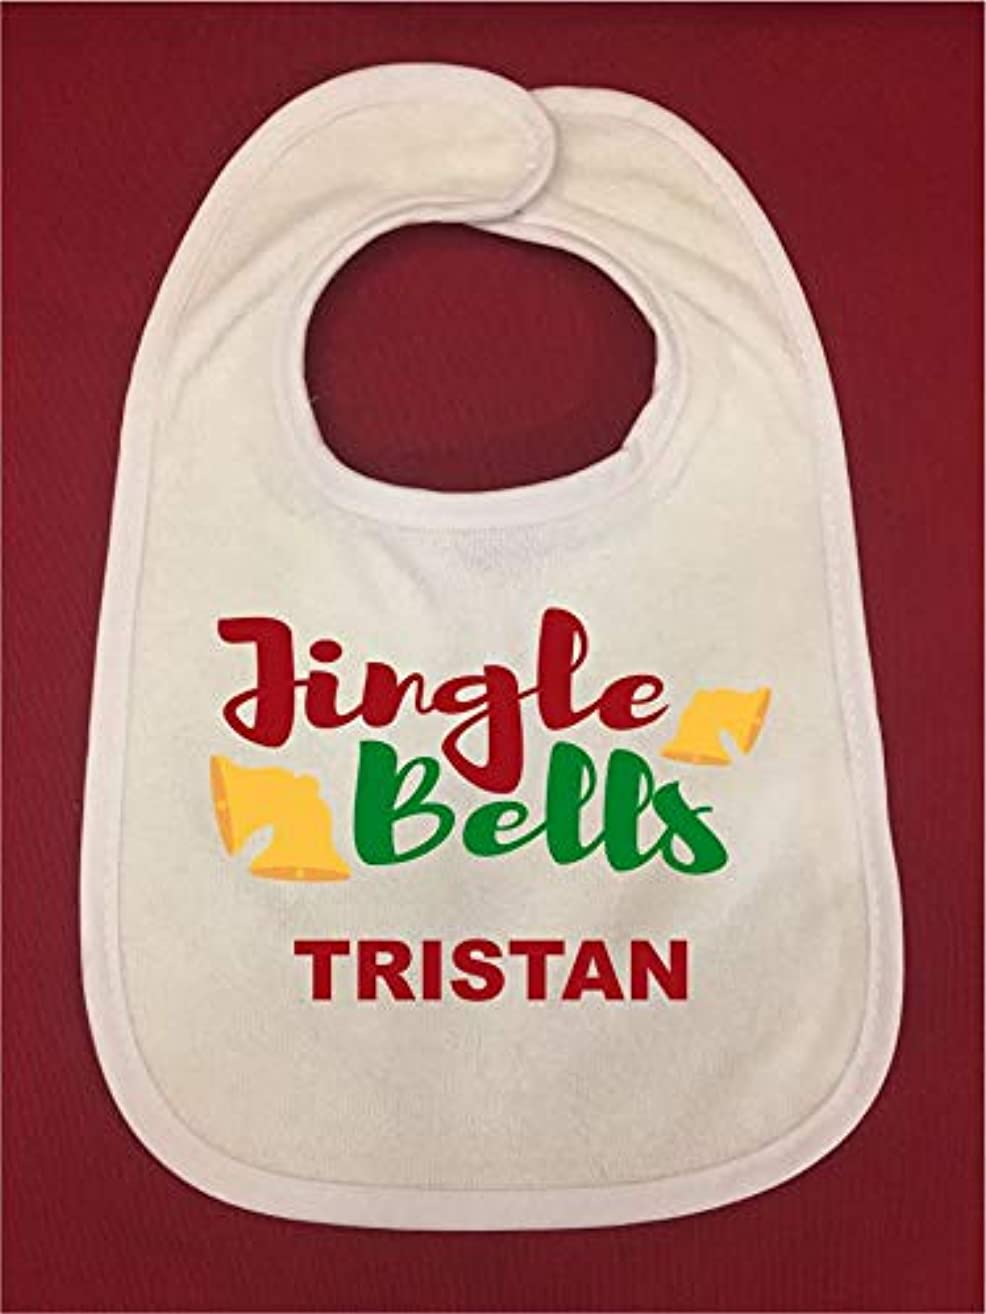 Personalized Holiday Baby Bibs, Personalized Baby Shower Gift, Mother's Day Gift, White Infant Bib